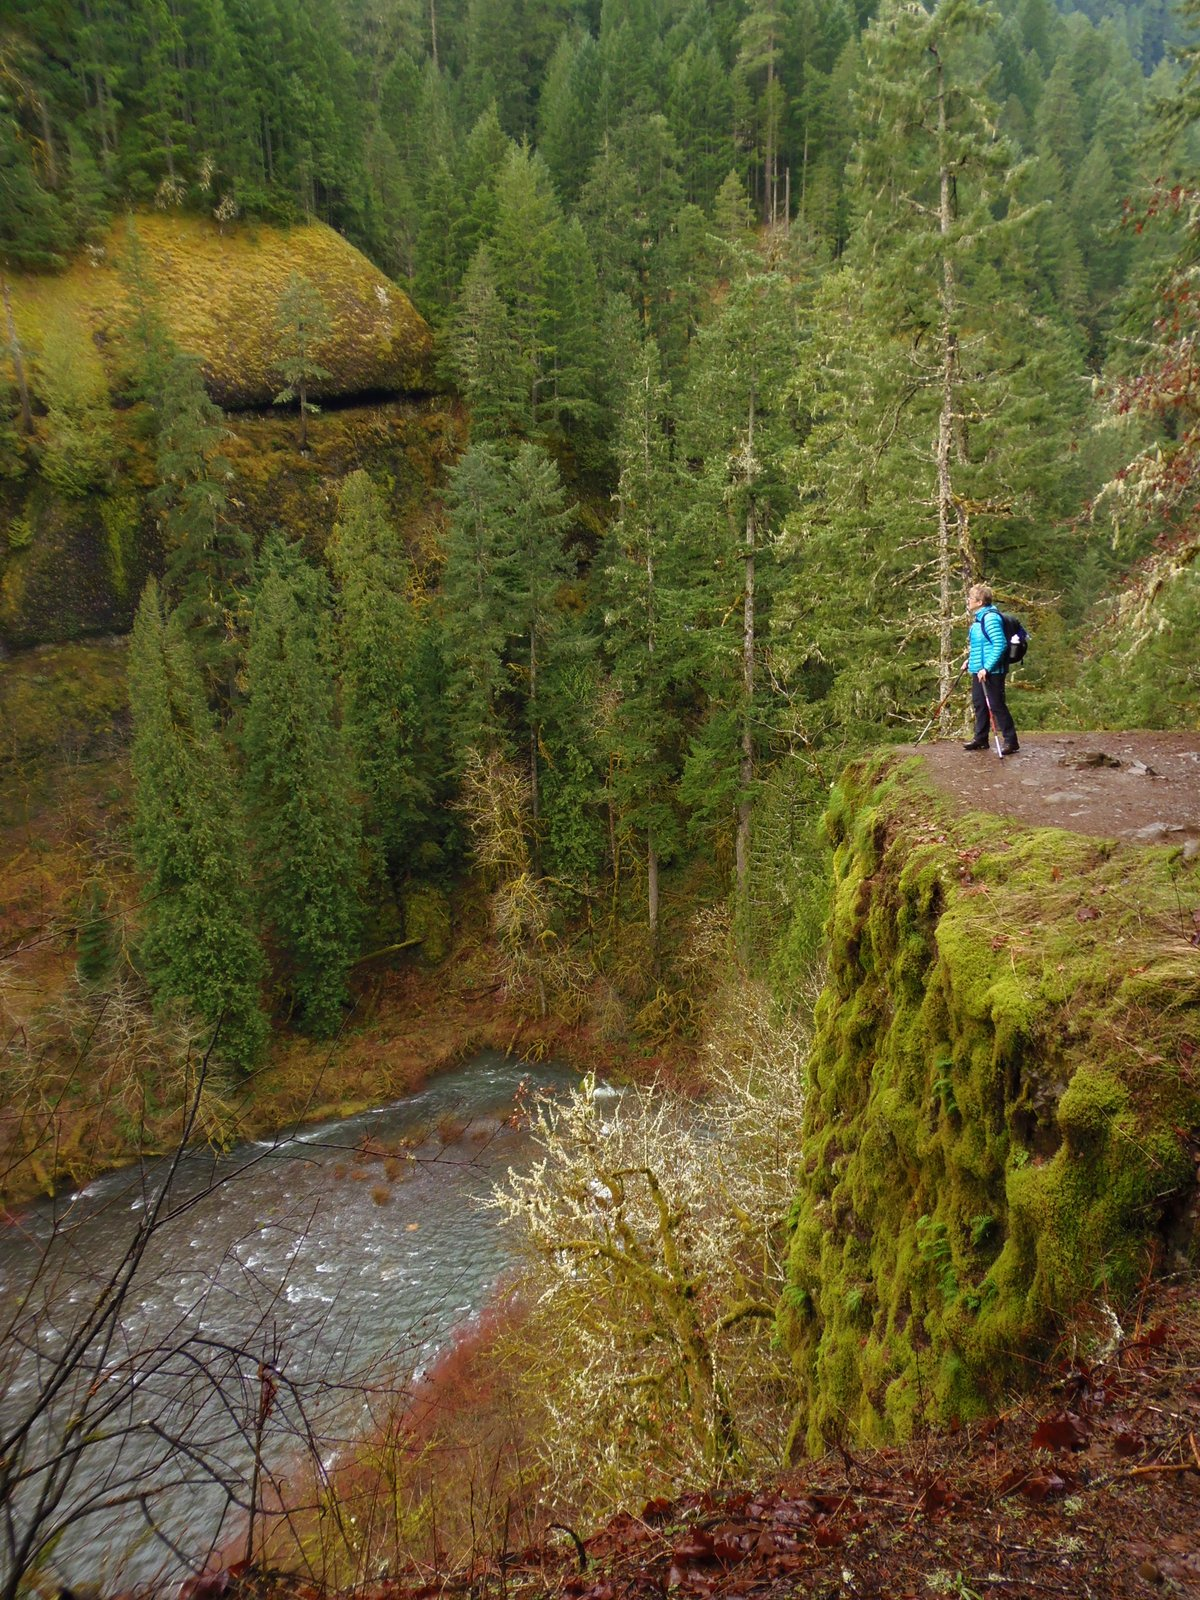 Reflections On The Eagle Creek Fire From Gorge Getaways Author Mainly Serve As A Getaway But Would Appreciate More Experienced Laura Foster